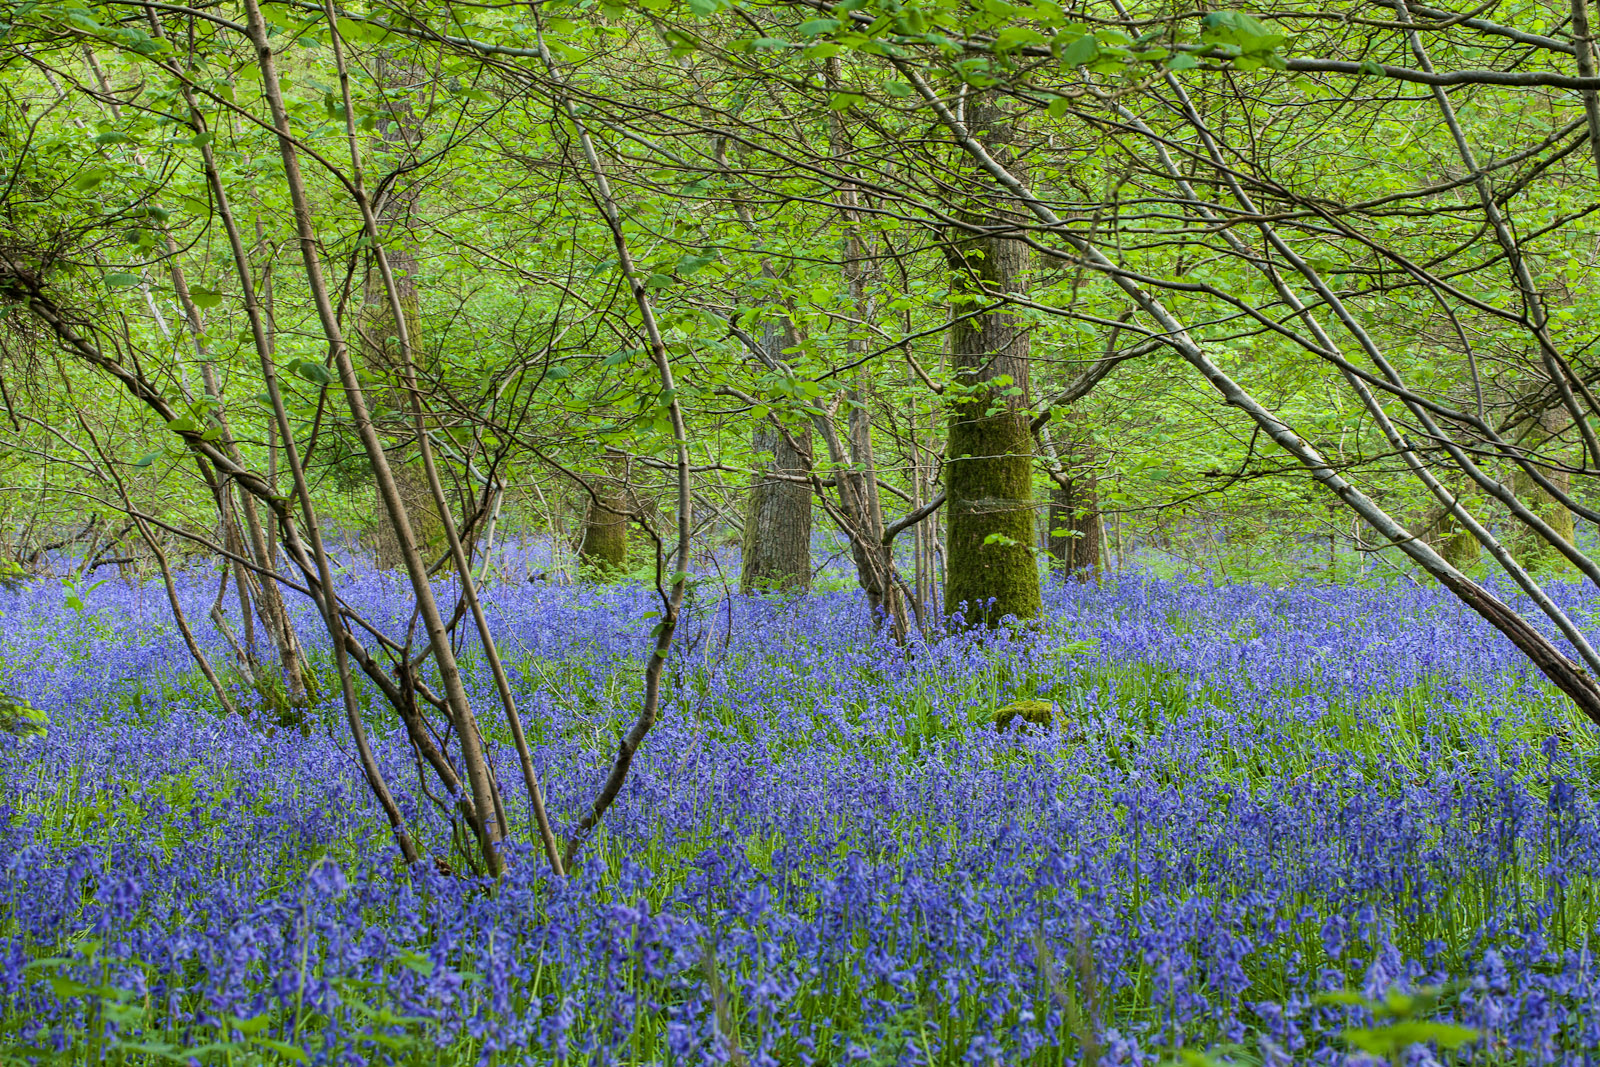 Deeper into the woods the bluebell carpet is still impressive...